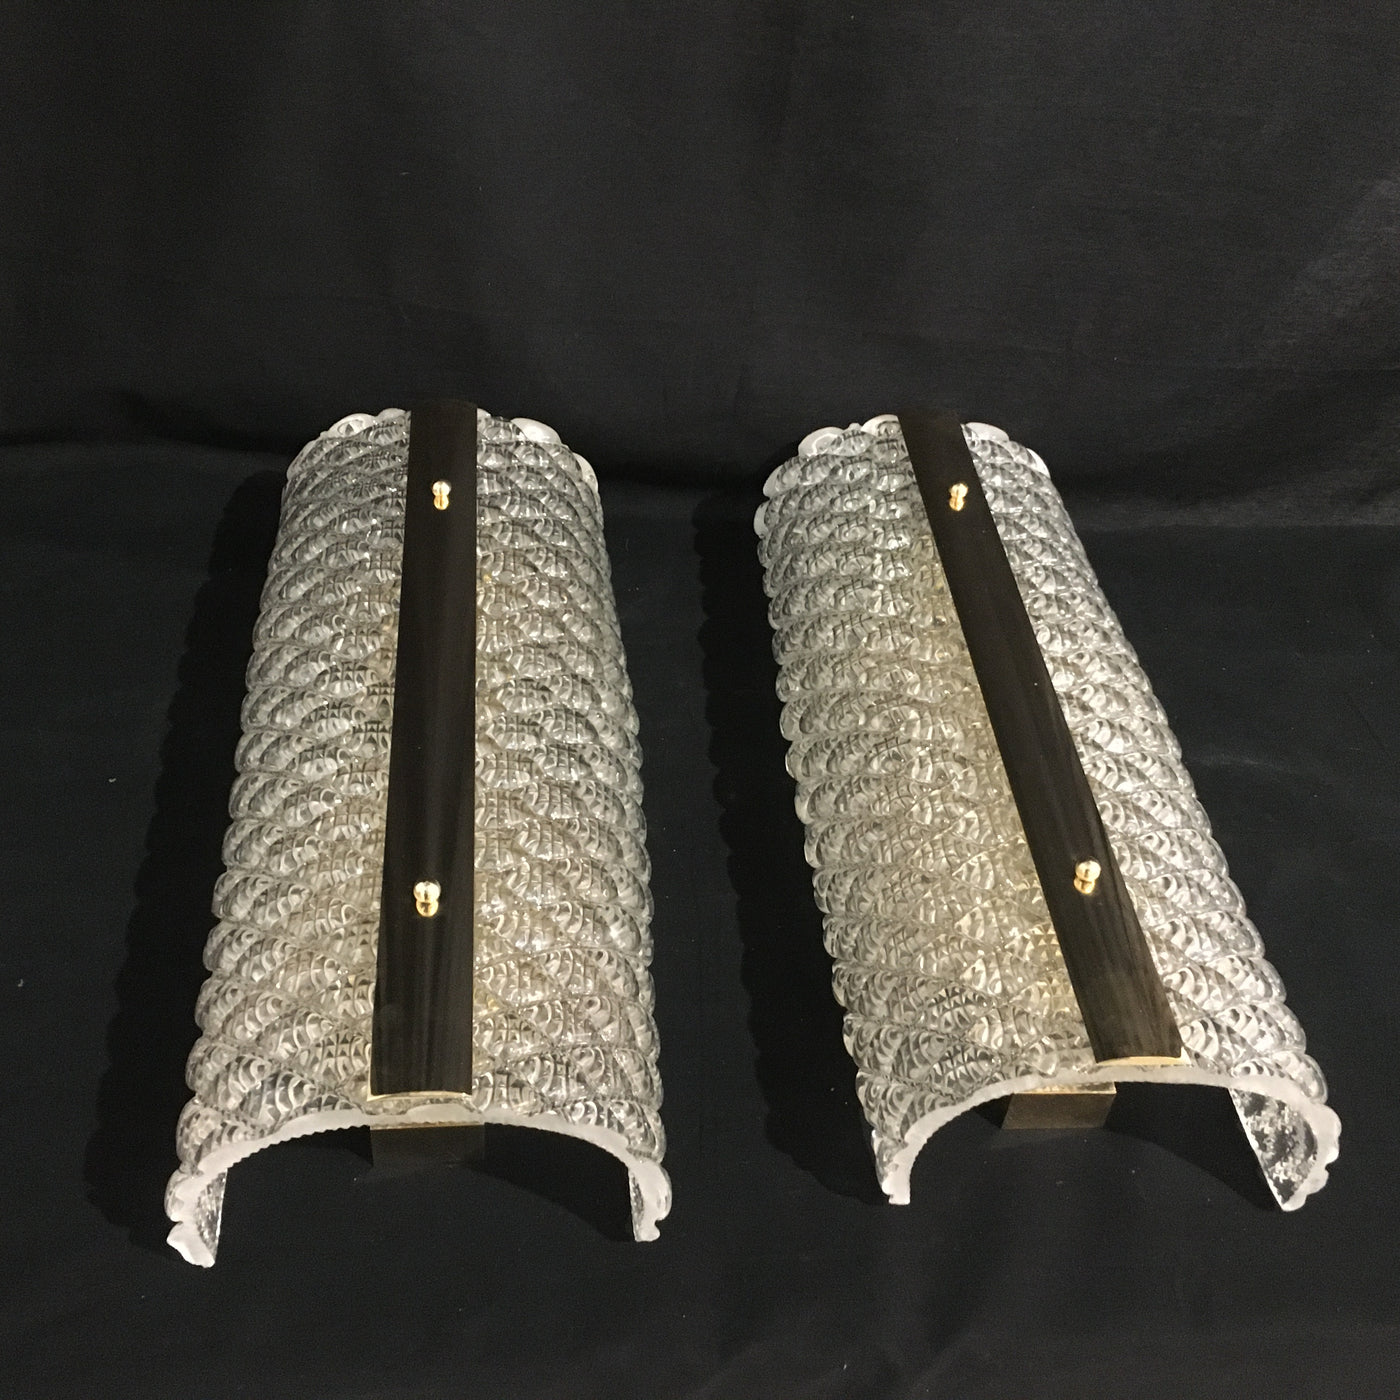 #6072-UGGG - Pair of Murano Sconces